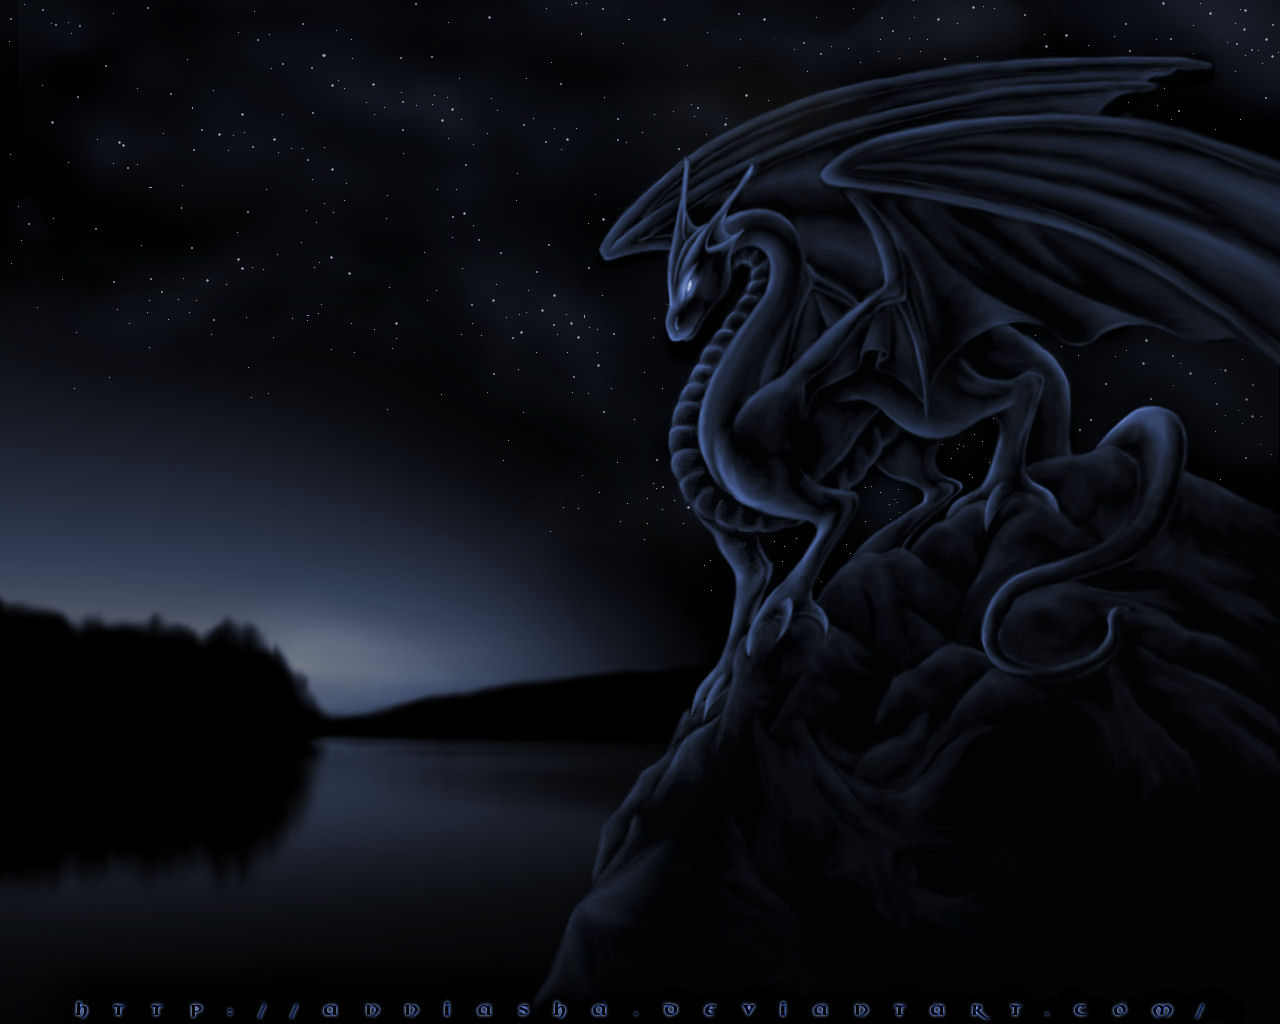 Dragon wallpaper Dragons wallpapers 1280x1024